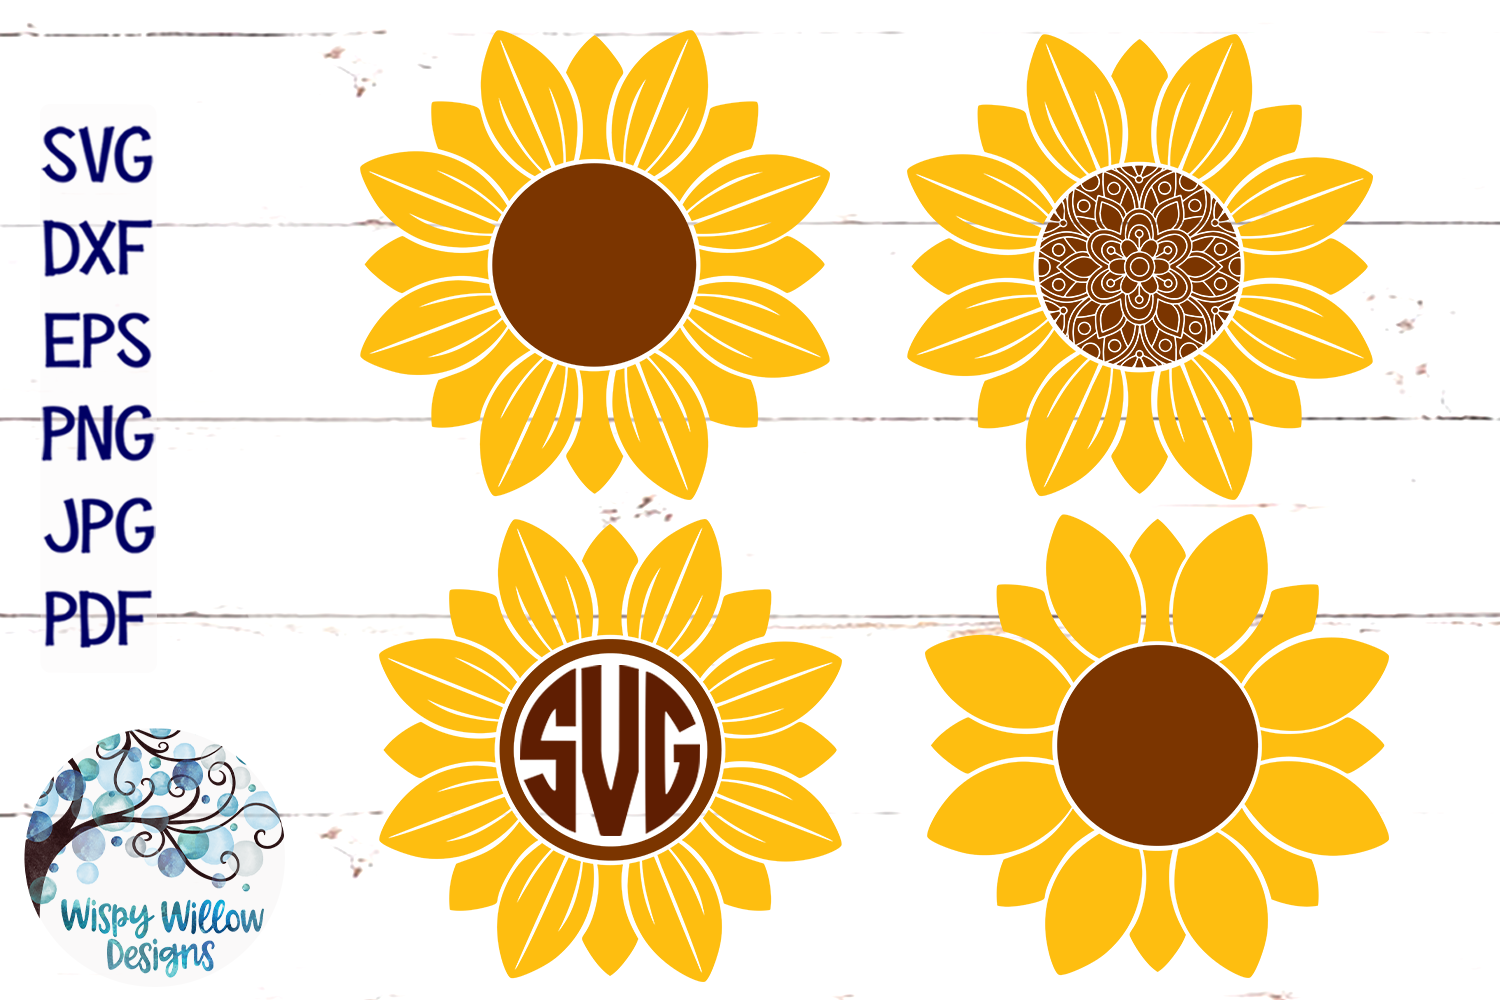 Download Free Sunflower Bundle Graphic By Wispywillowdesigns Creative Fabrica for Cricut Explore, Silhouette and other cutting machines.